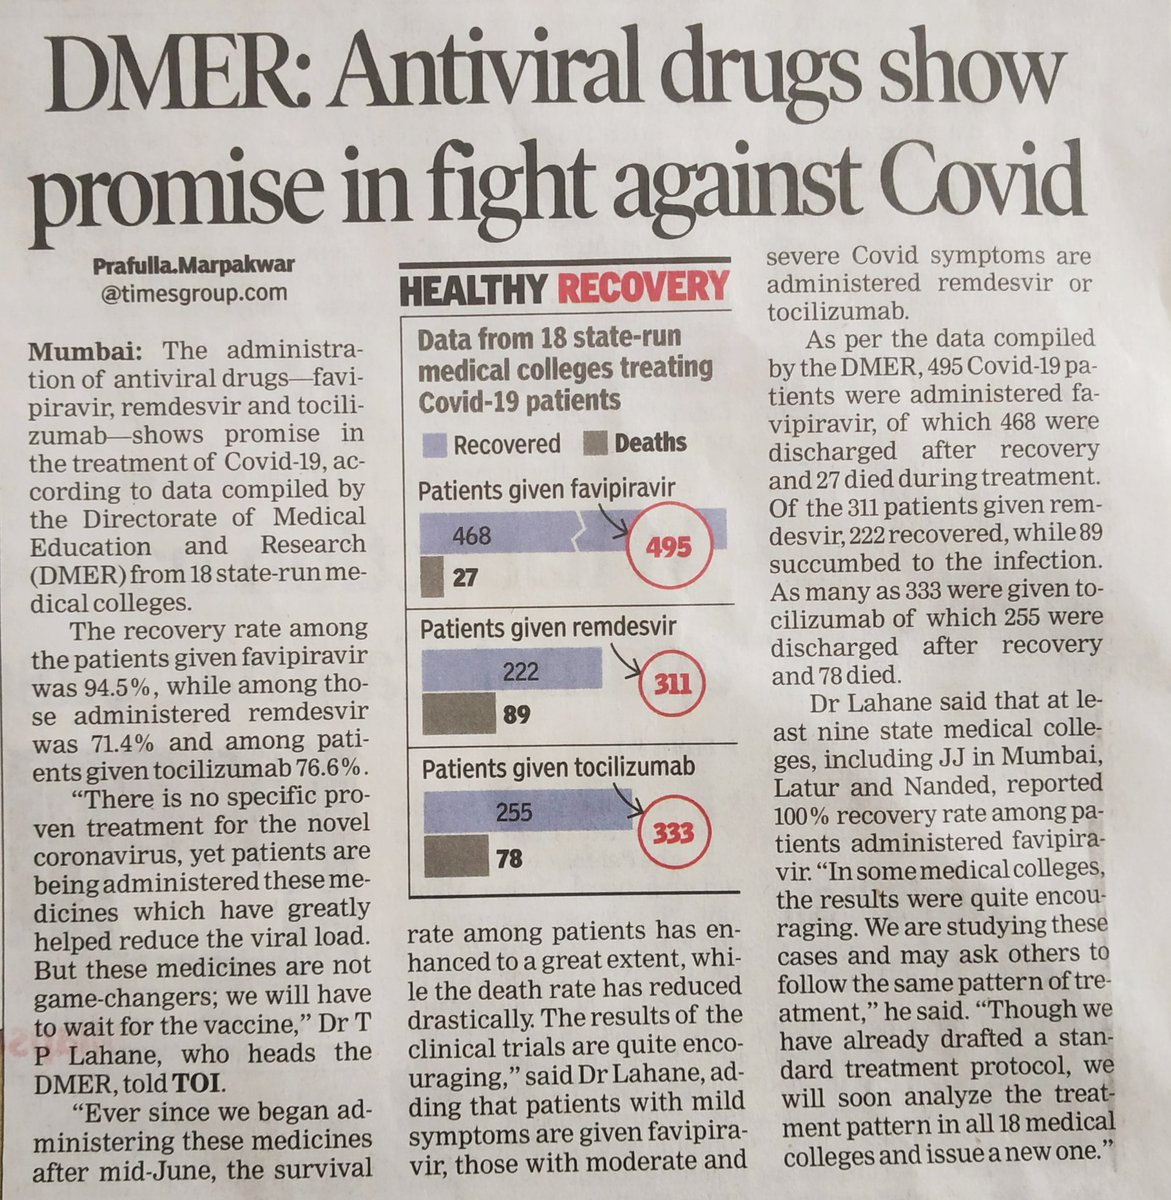 Data from Maharashtra's 18 Govt. Medical colleges (GMC) treating #COVID__19 patients   Recovery Rate (RR) among patients given  1. Favipiravir : 94.5% (468/495) 2. Tocilizumab : 76.6% (255/333) 3. Remdesvir : 71.4% (222/311)  ATLEAST 9 GMC's reported 100% RR for Favipiravir ! https://t.co/rol00UdQEv